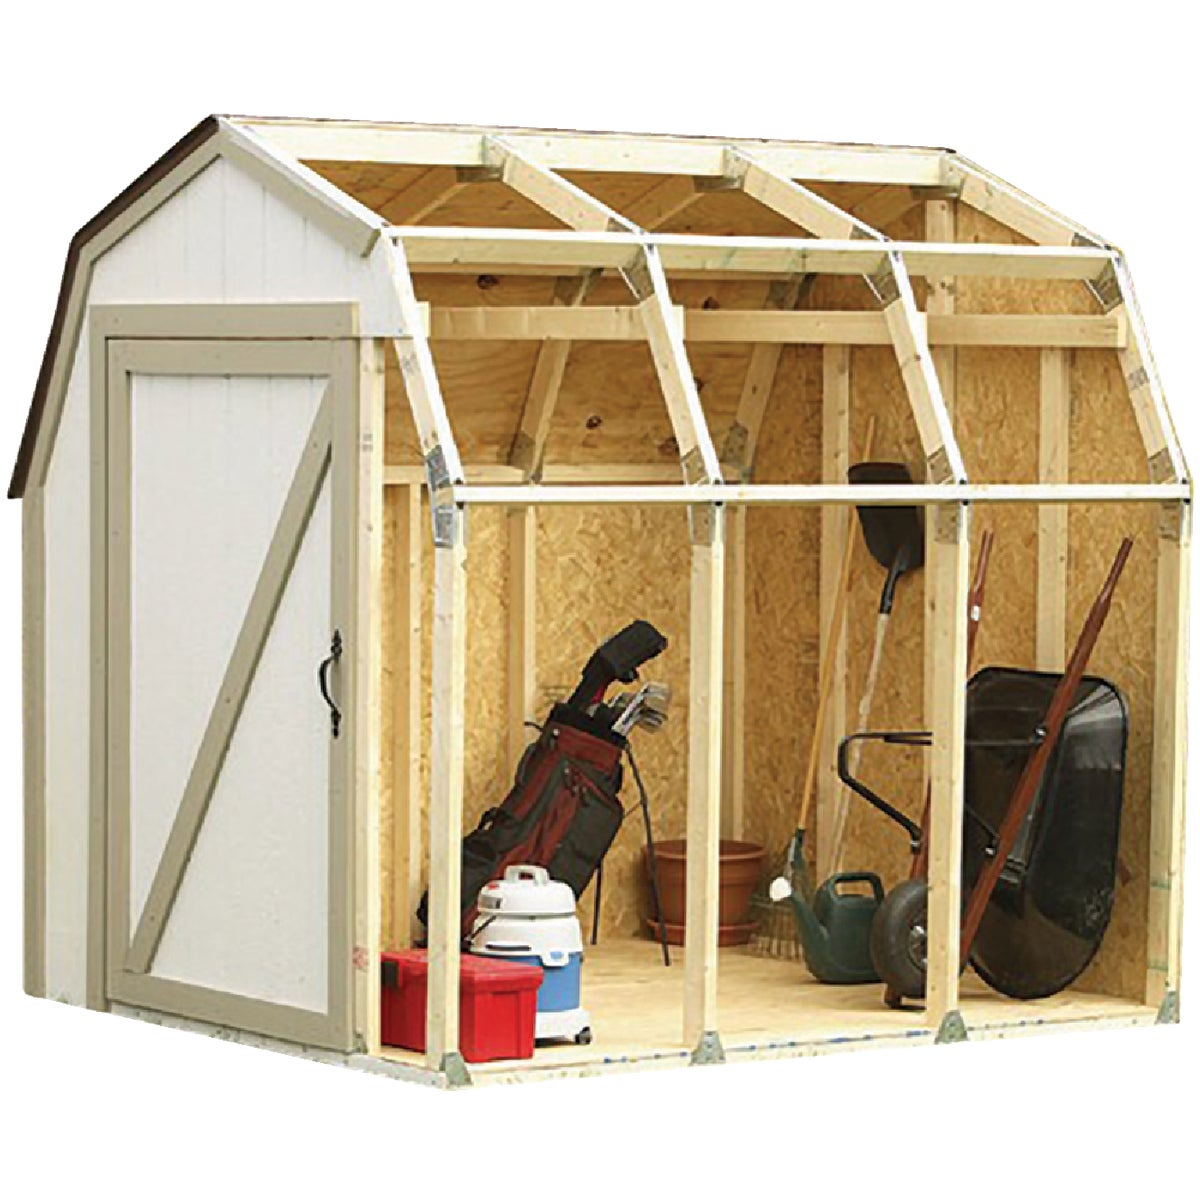 BARN STYLE SHED KIT - 90190MI by Hopkins Mfg Corp